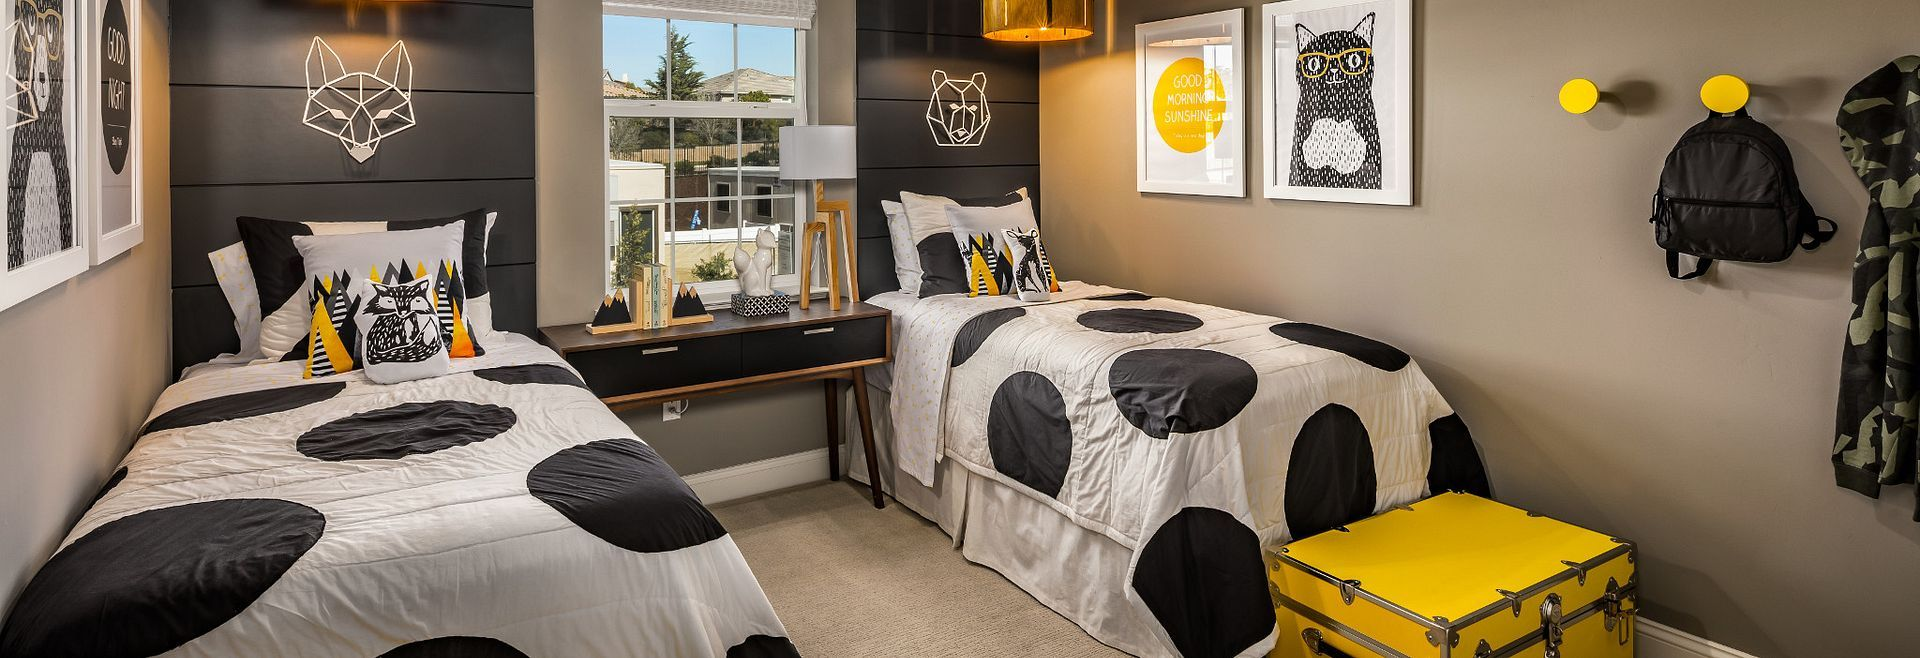 Bedroom featured in the Sage By Shea Homes - Trilogy in Santa Barbara, CA